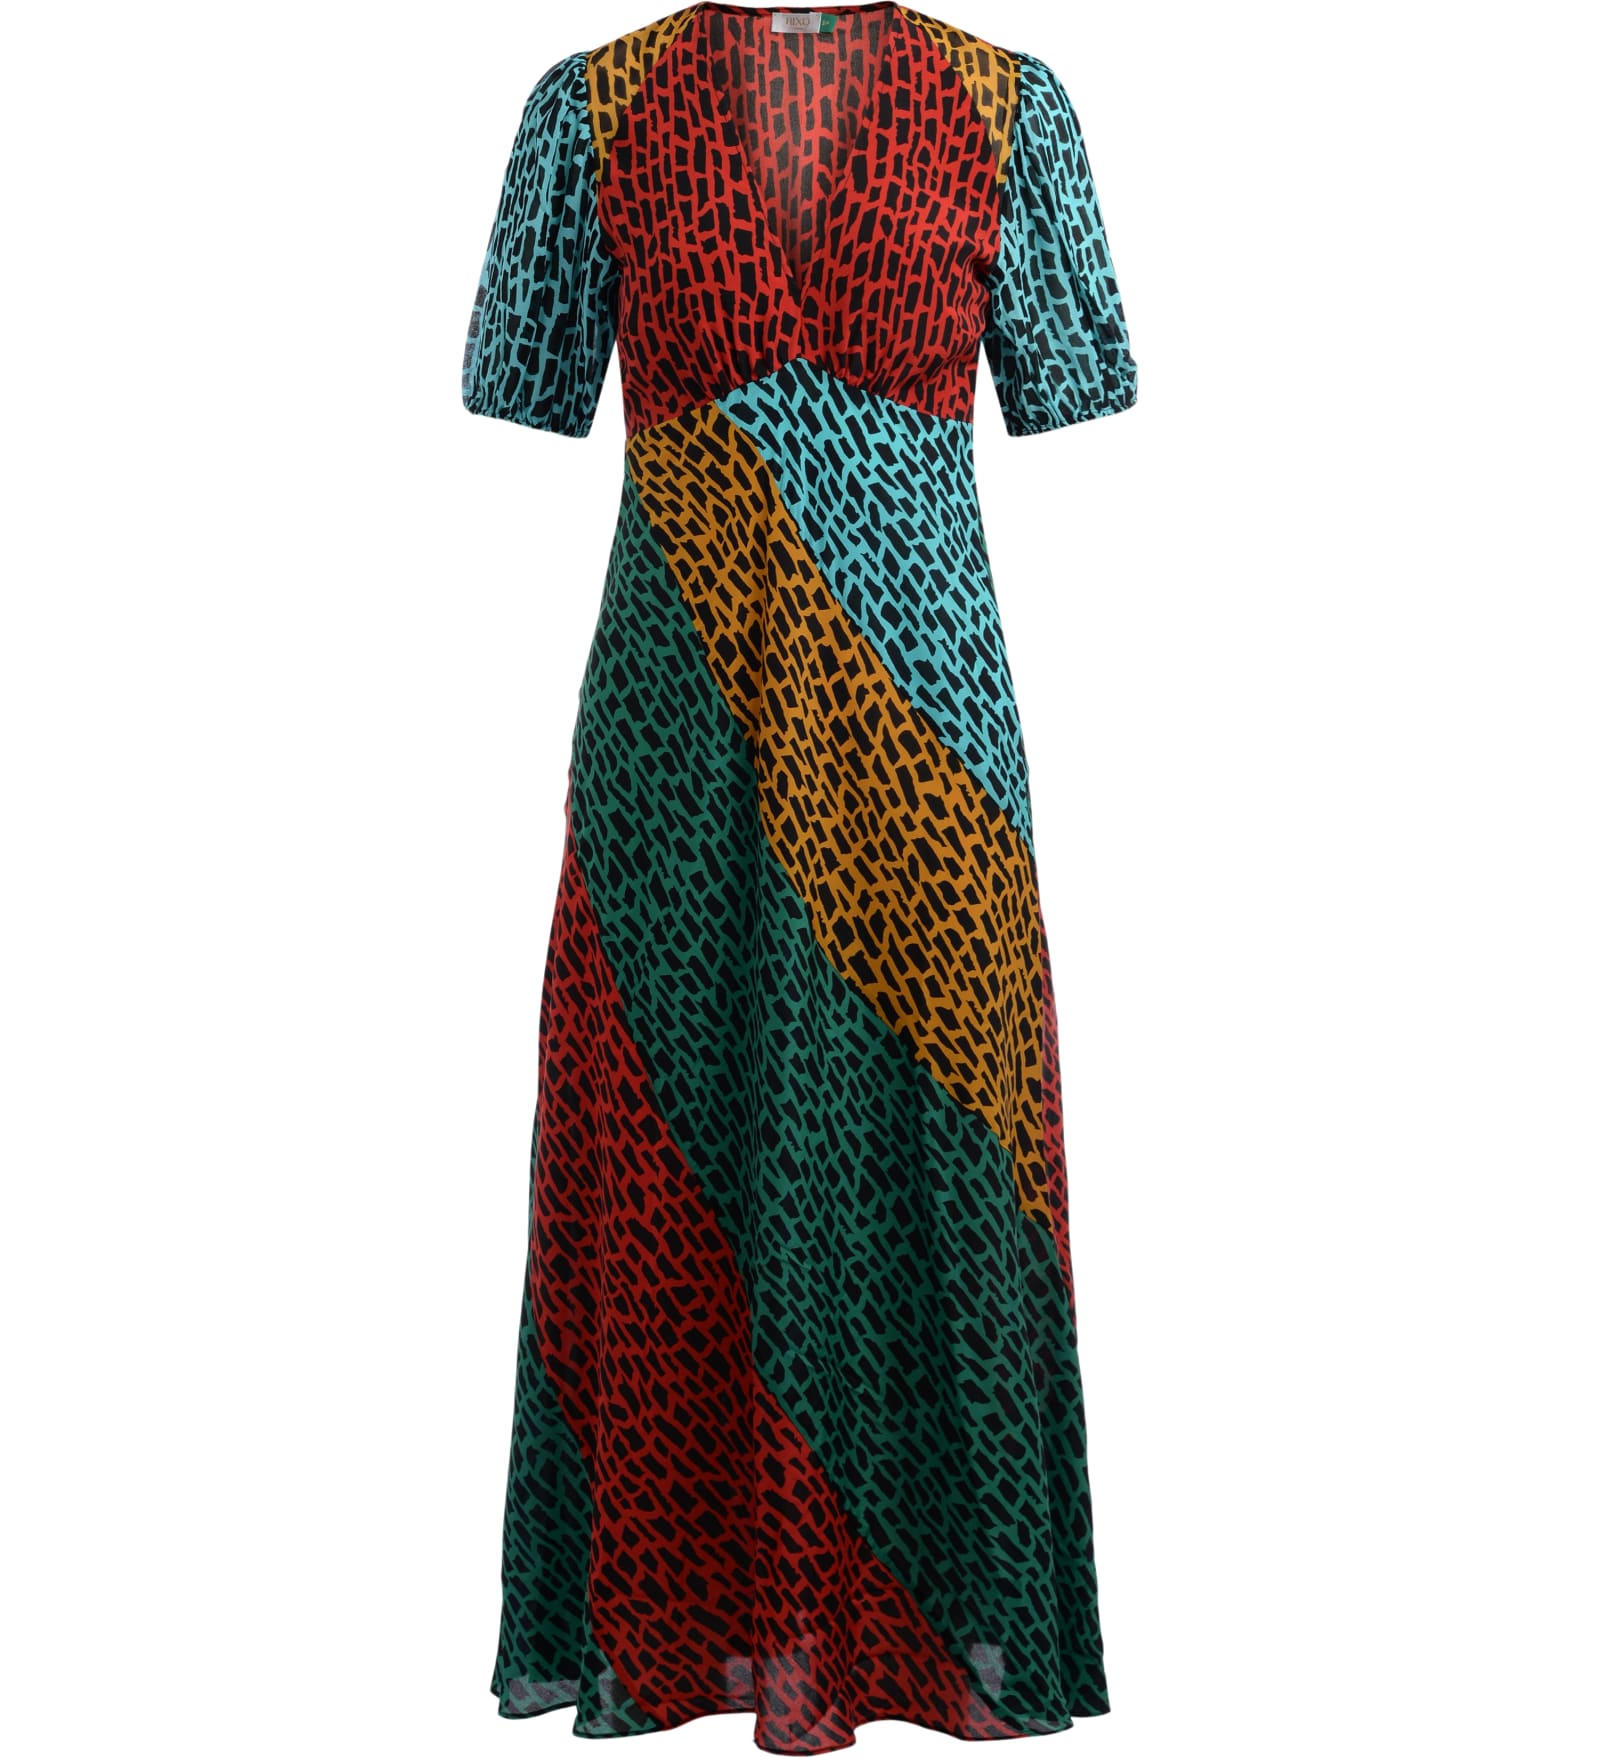 Buy Rixo Maxi Dress Model Amber In Multicolor Giraffe Print online, shop RIXO with free shipping